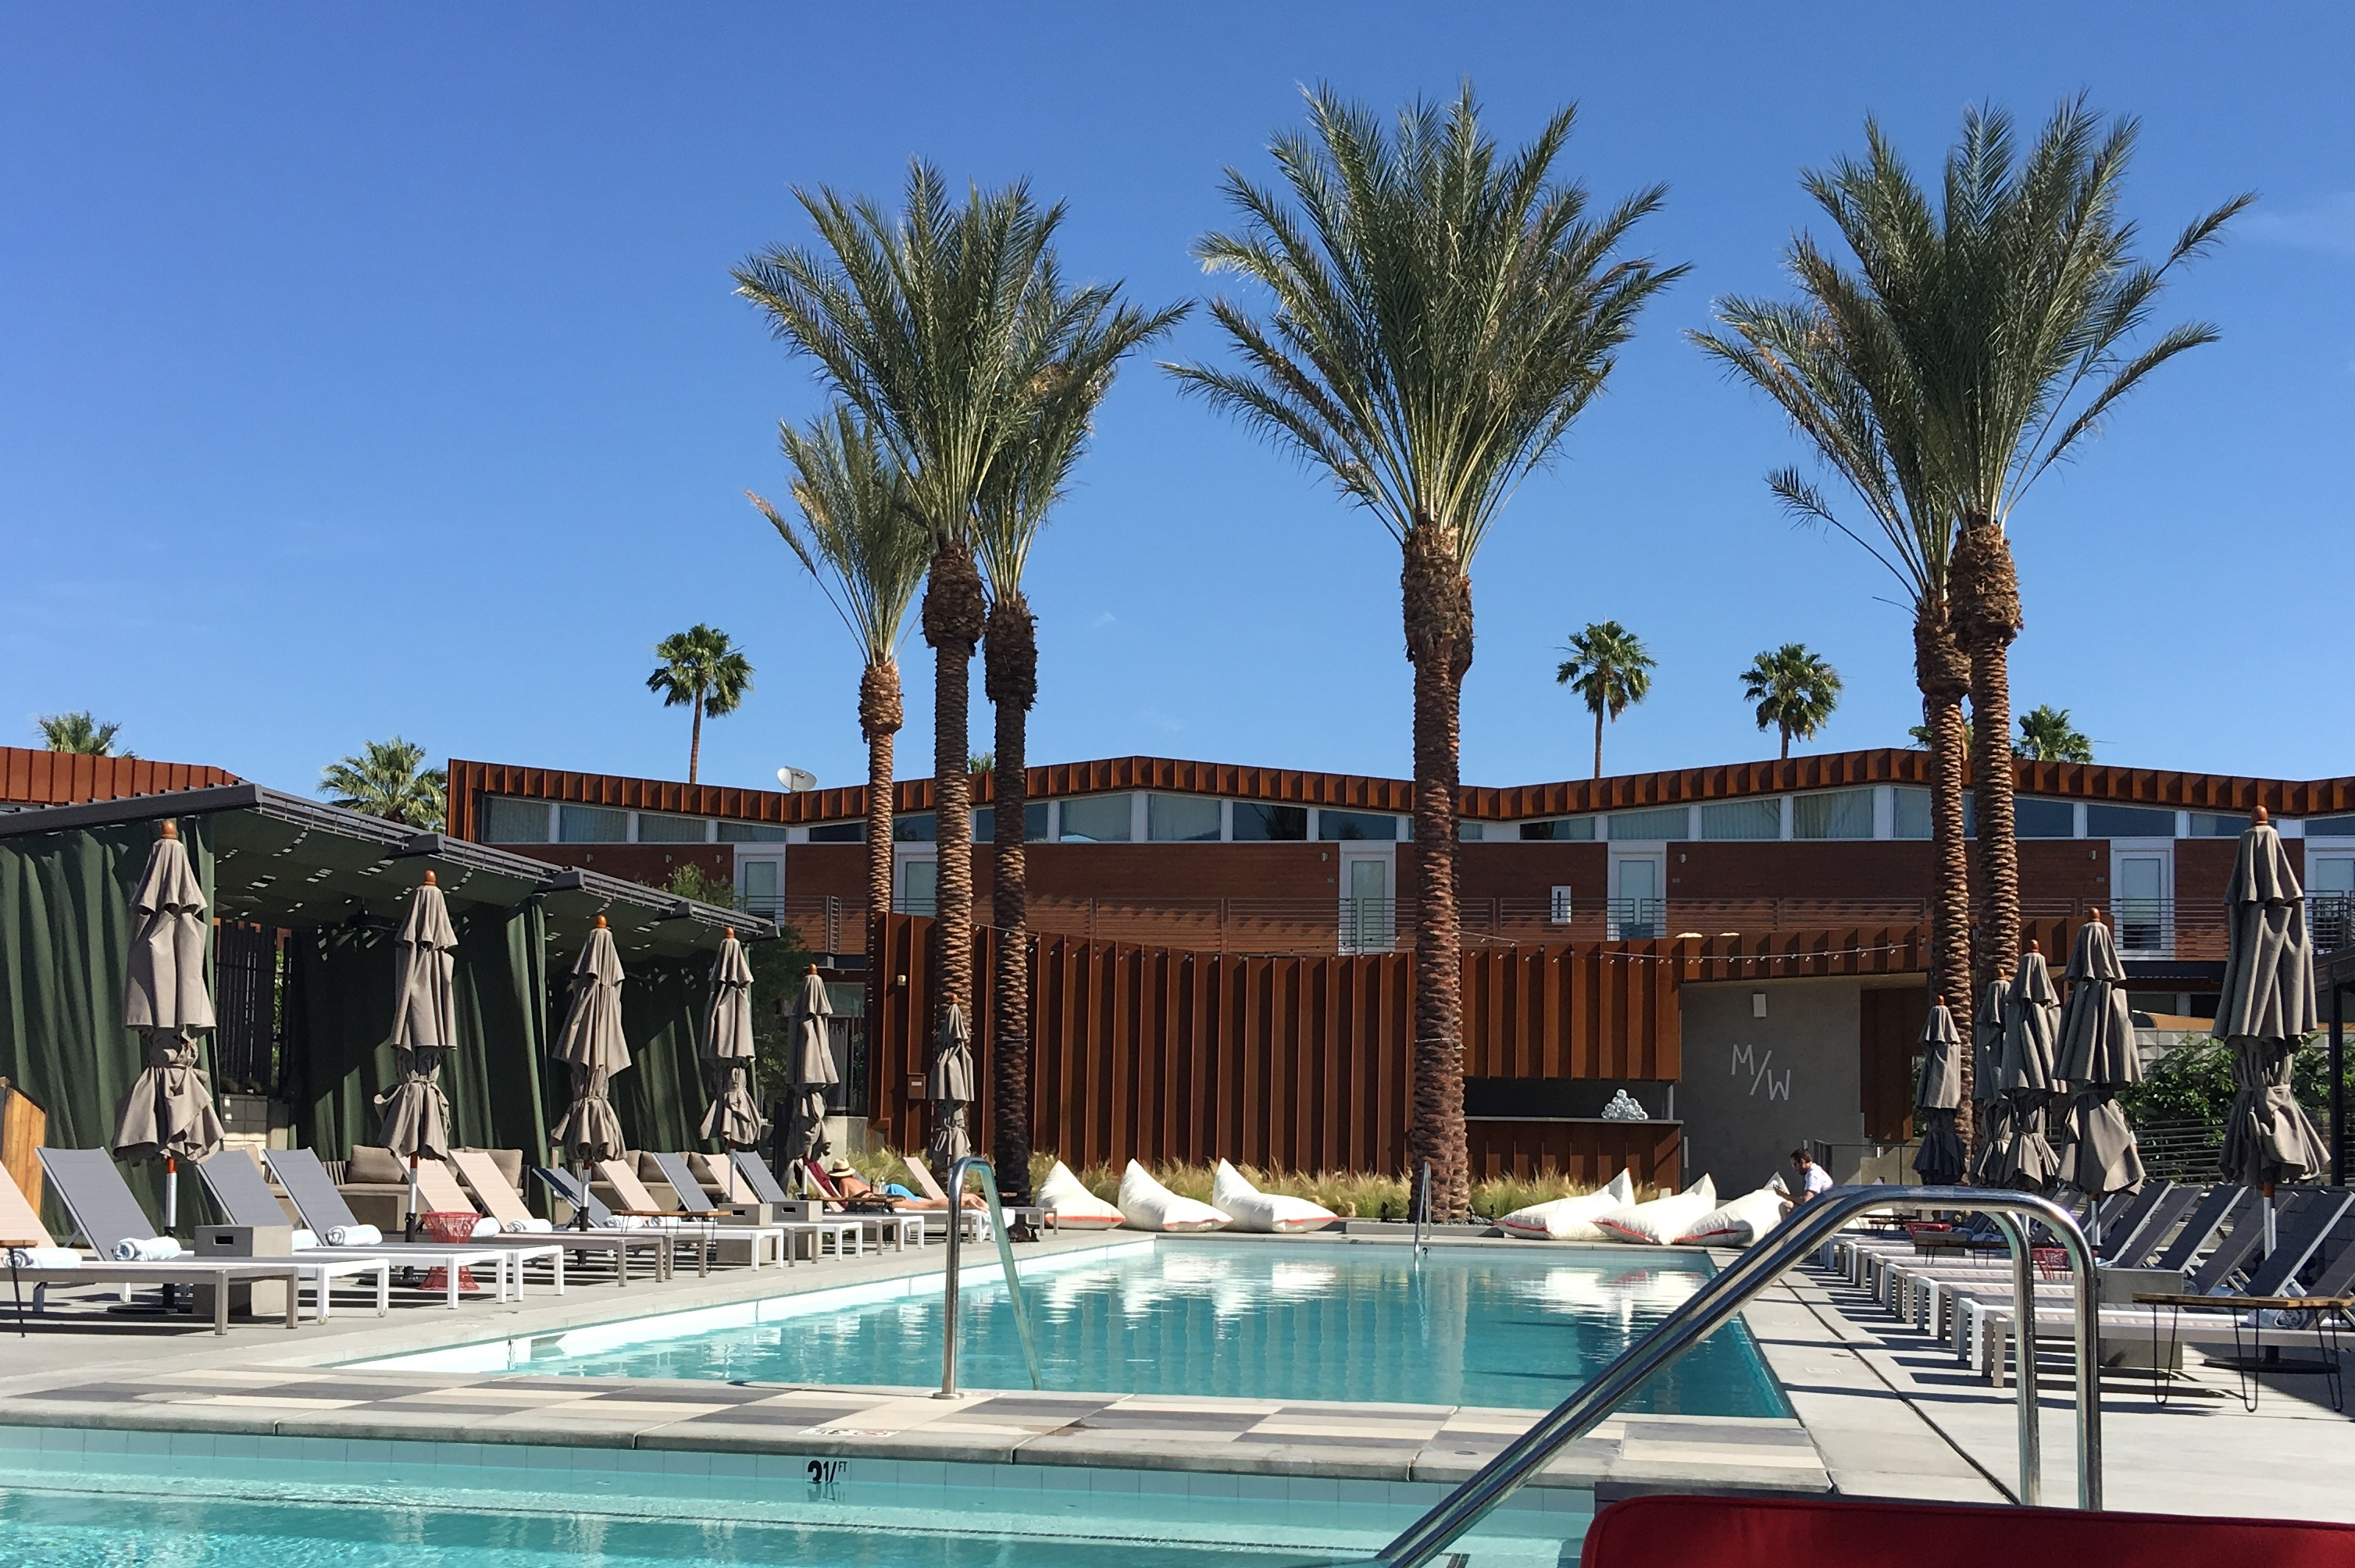 Arrive Hotel Reservoir Palm Springs